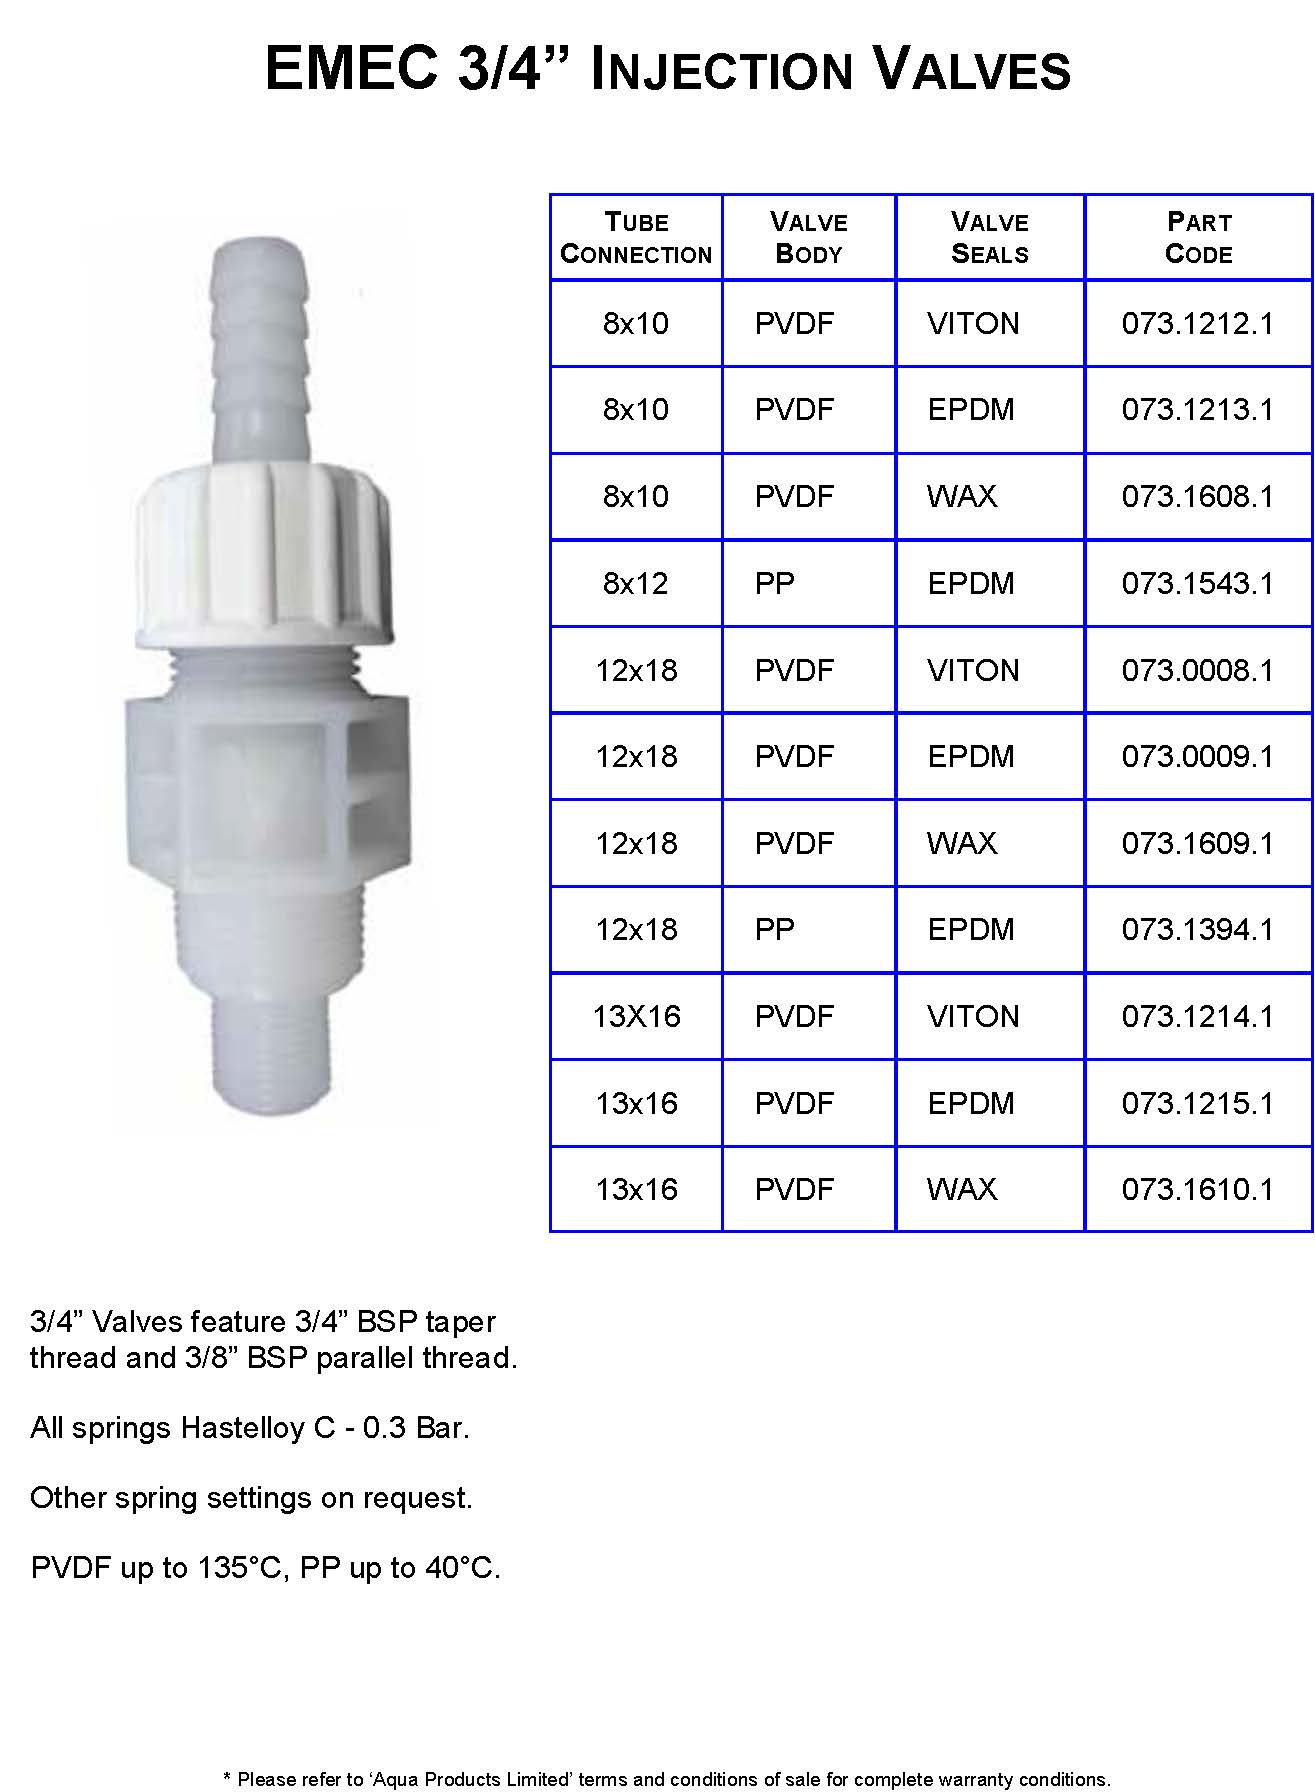 3 4 Injection Valves Products Aqua Products Ltd